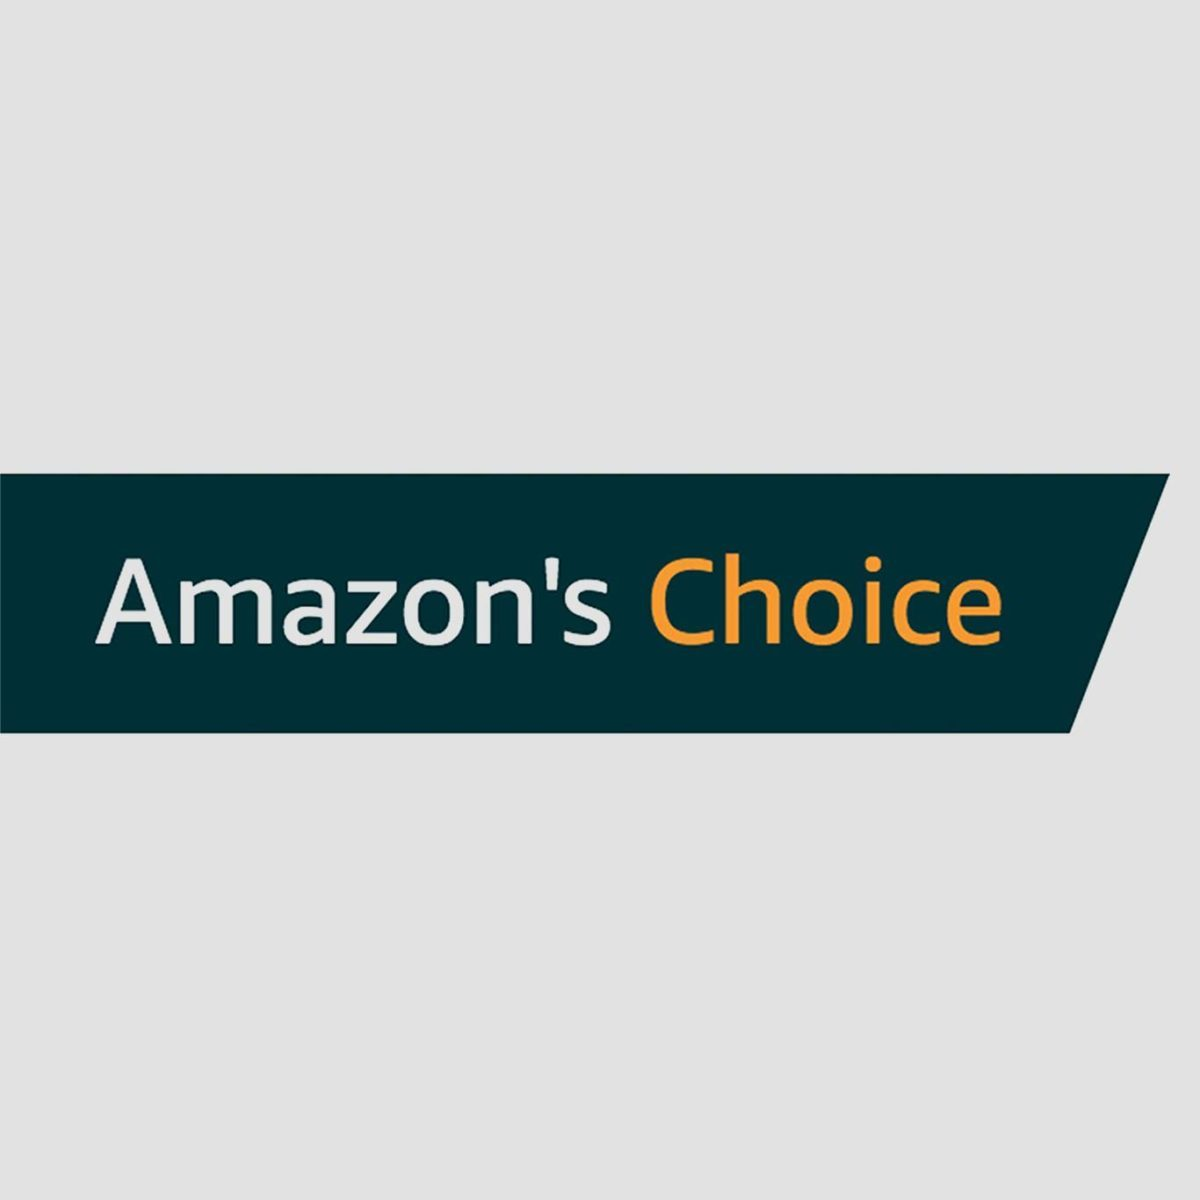 """What Does """"Amazon's Choice"""" Actually Mean?"""